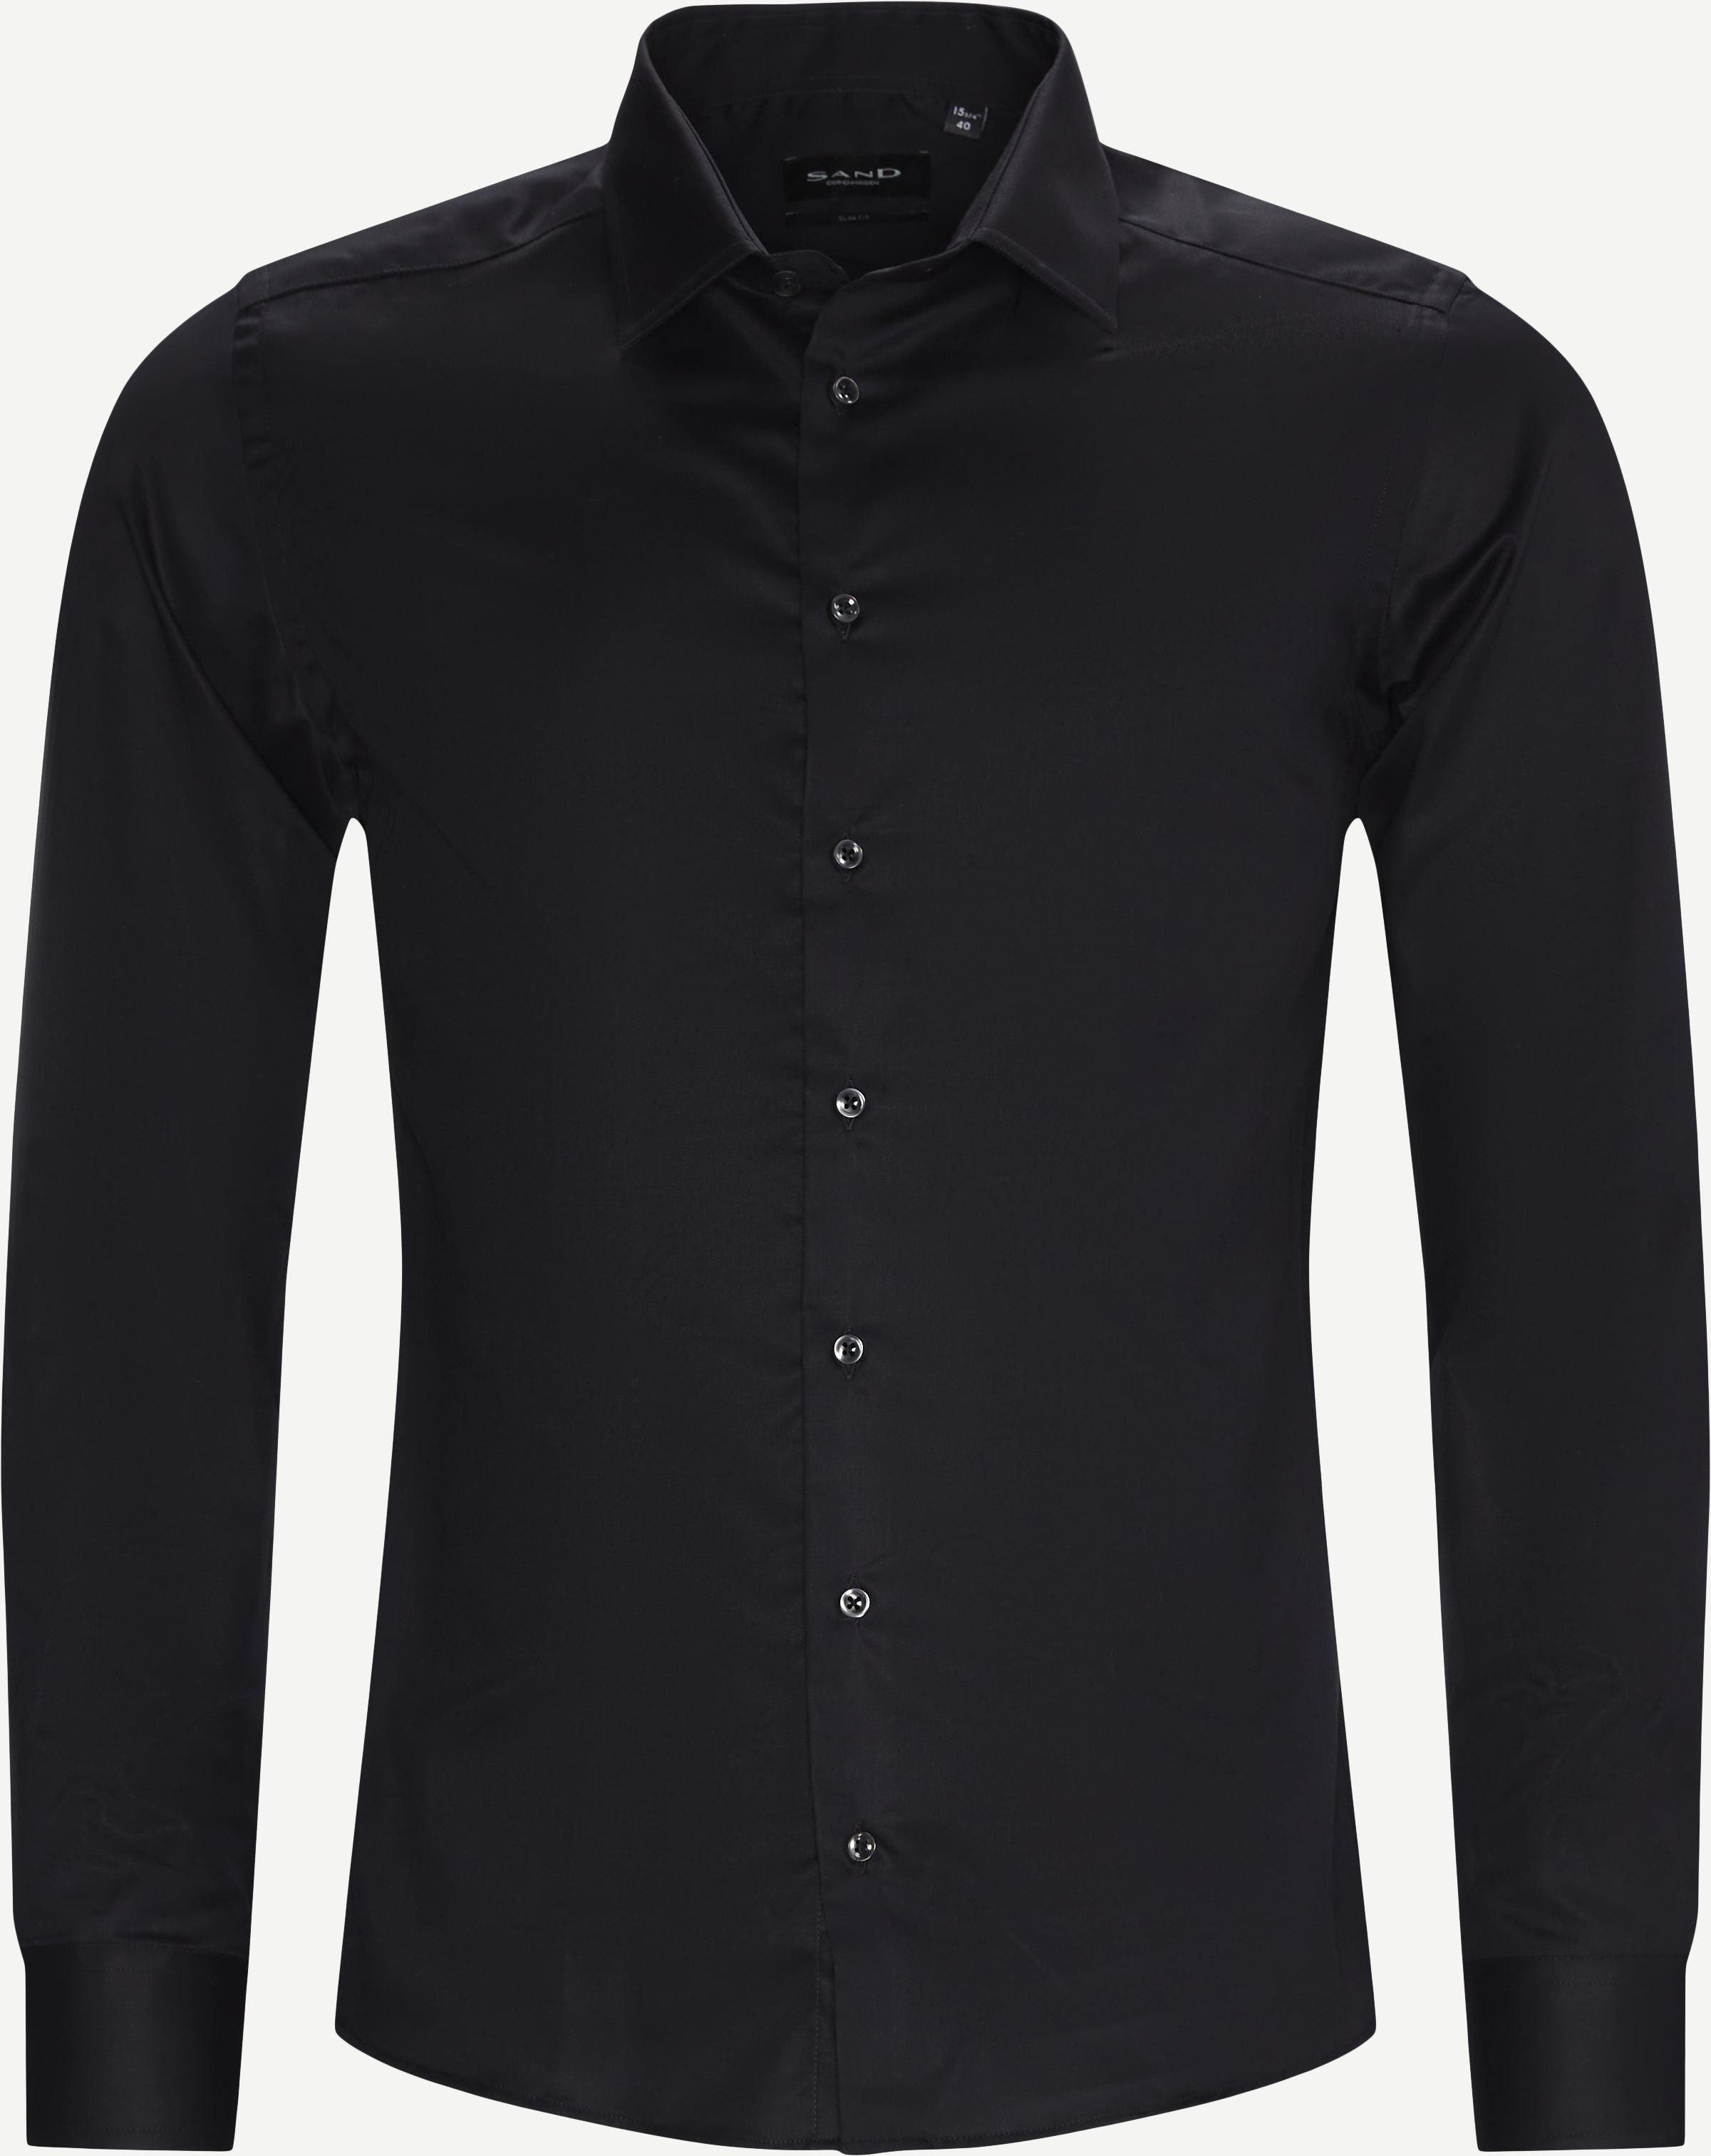 Royal Twill Stretch Iver 2/State N 2 Shirt - Shirts - Black